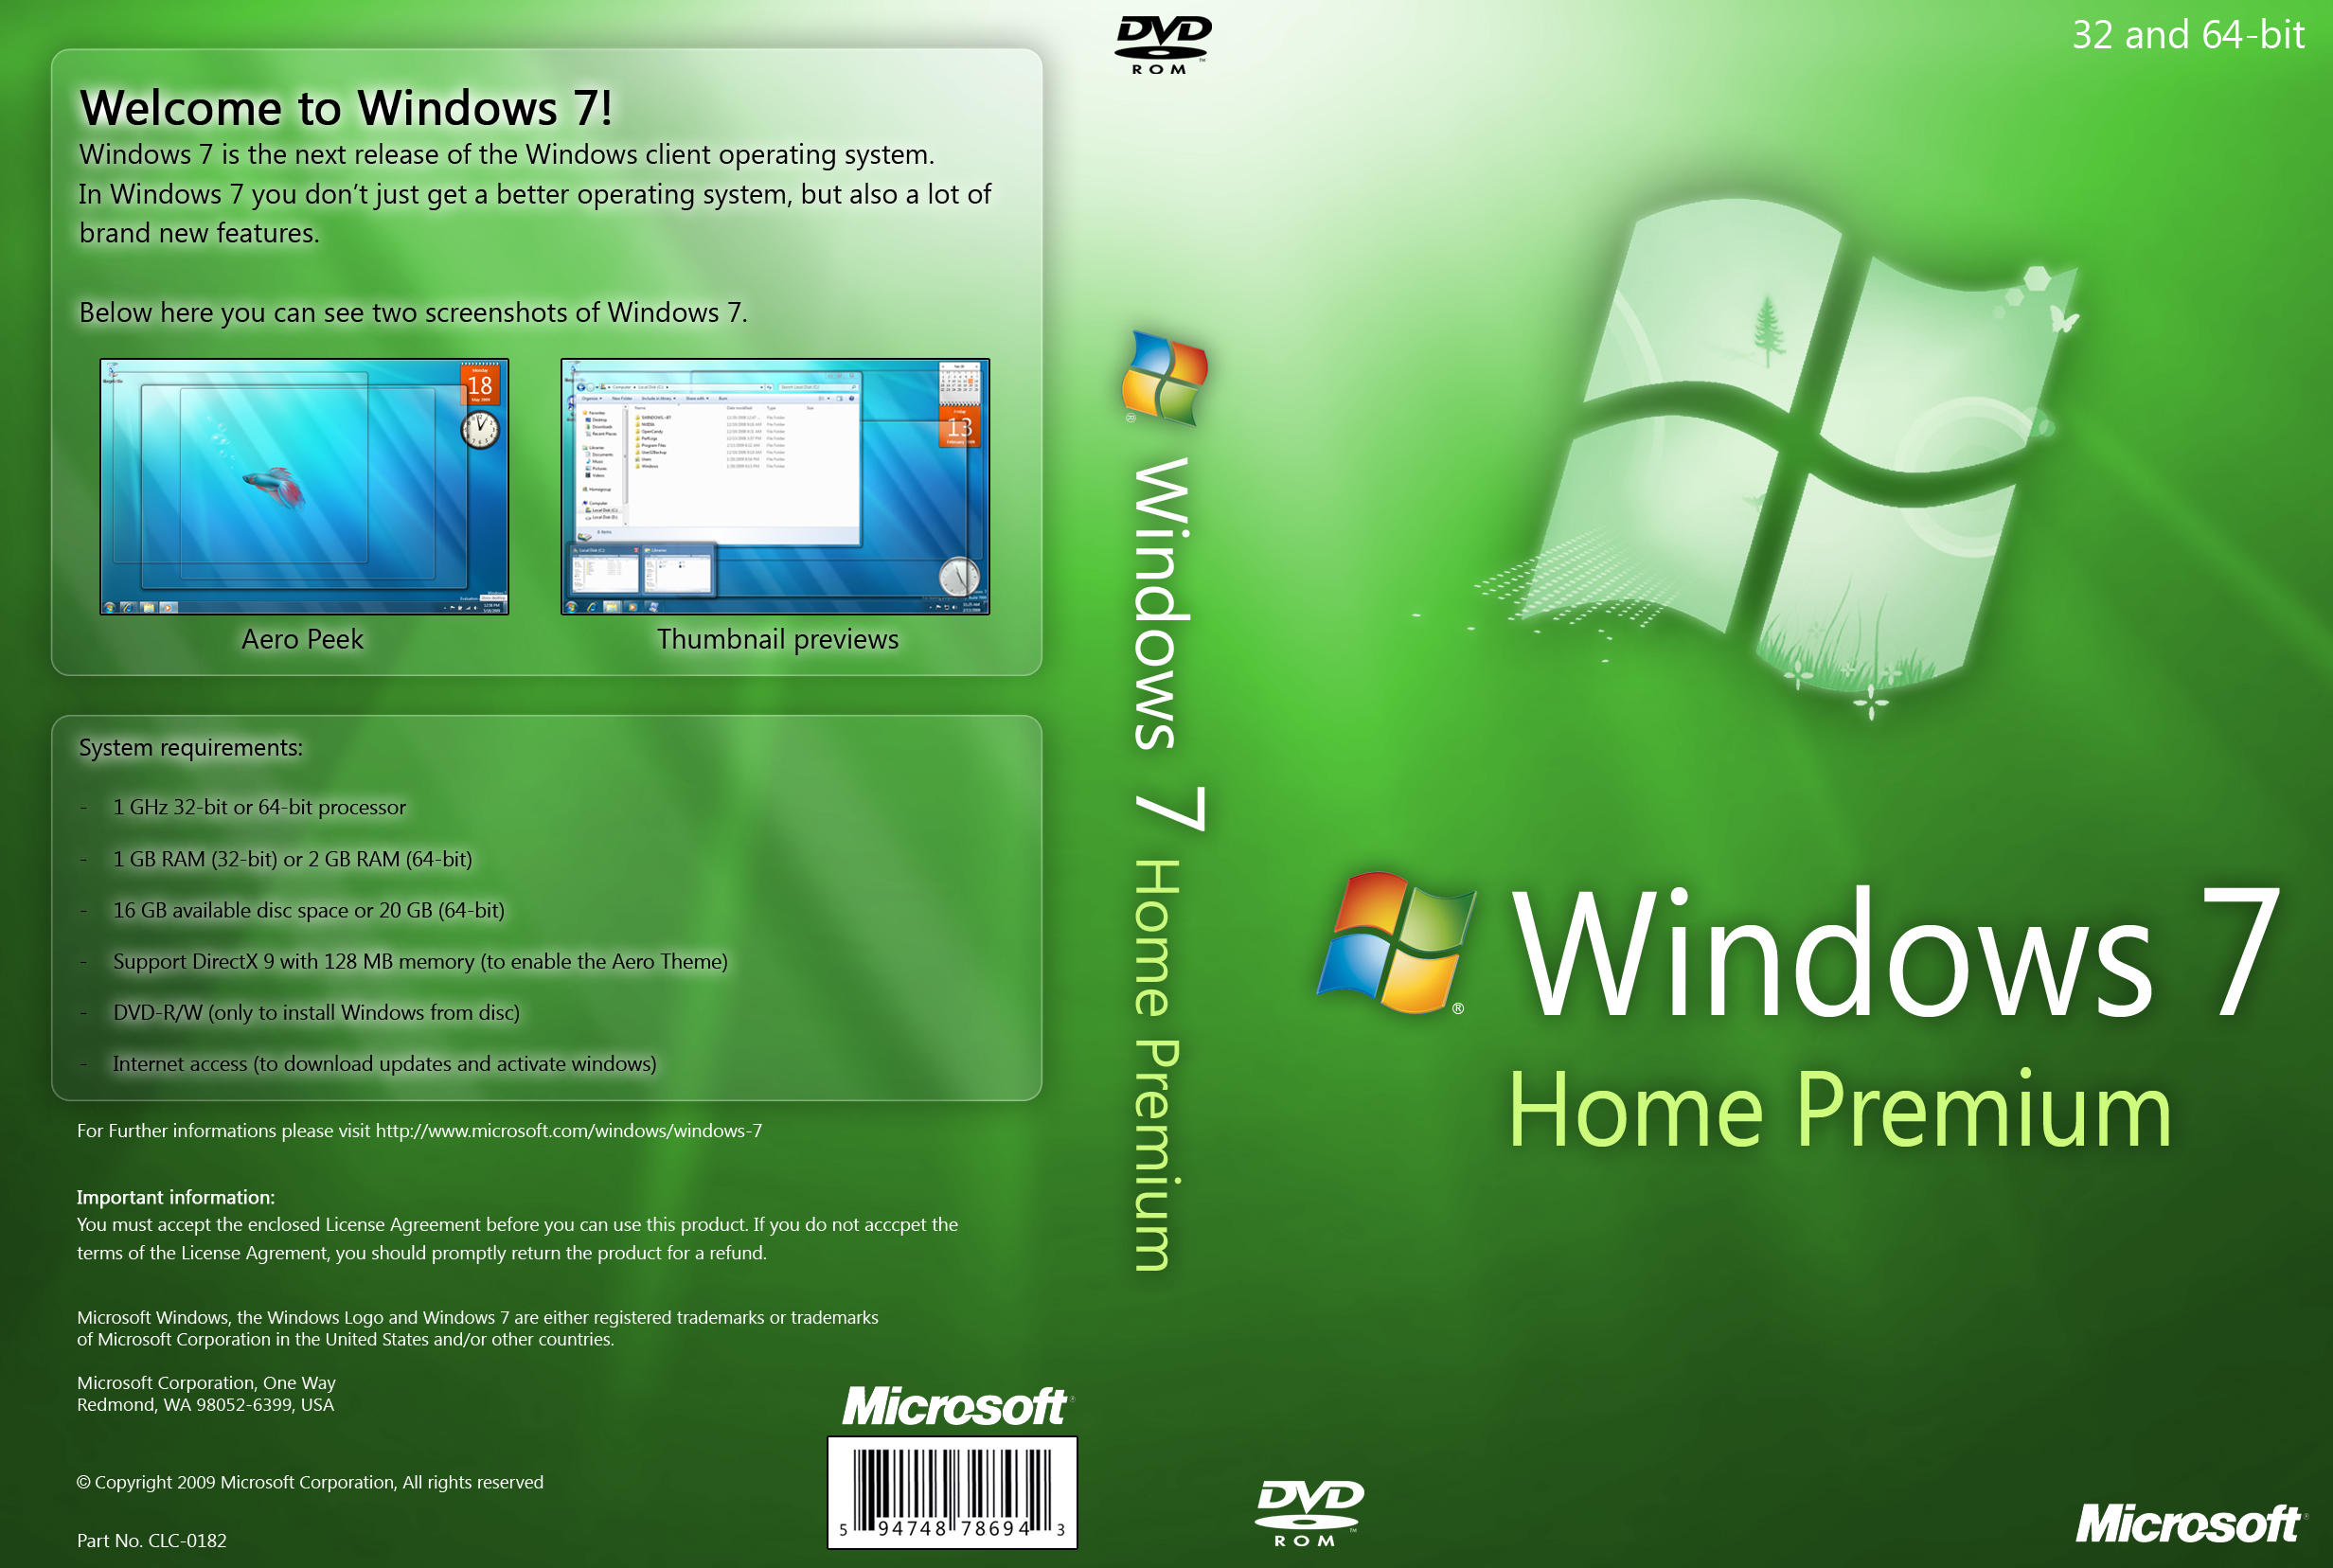 Movie Maker In Windows 7 Home Premium